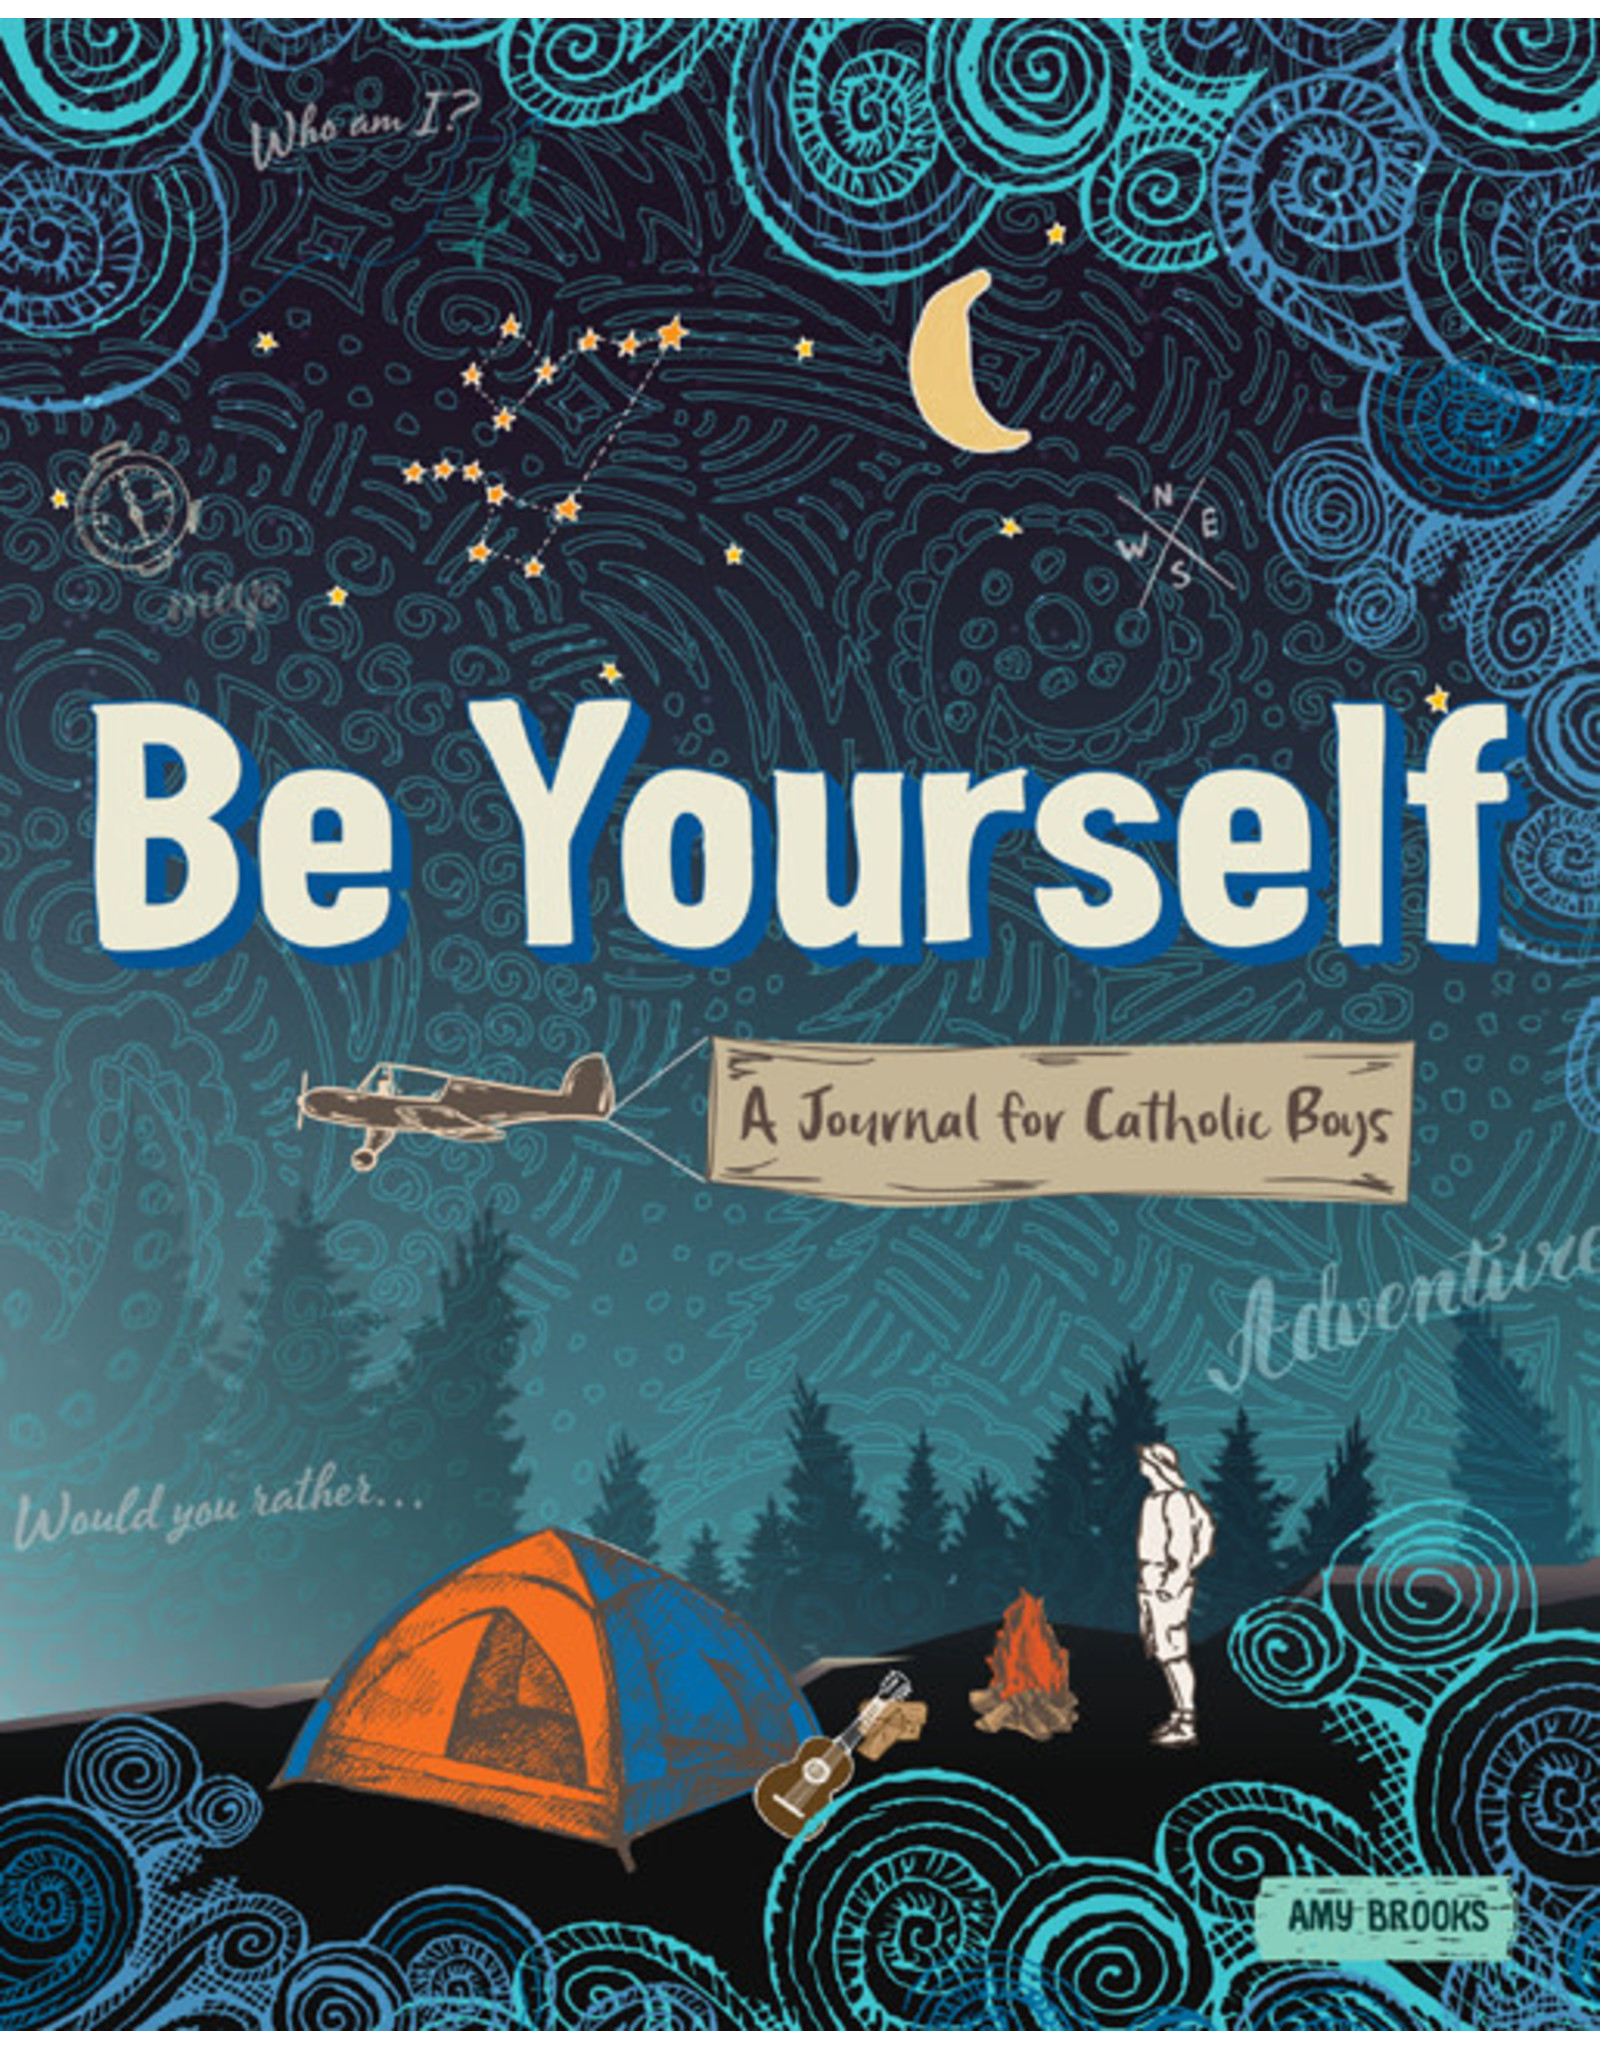 Be Yourself: A Journey for Catholic Boys